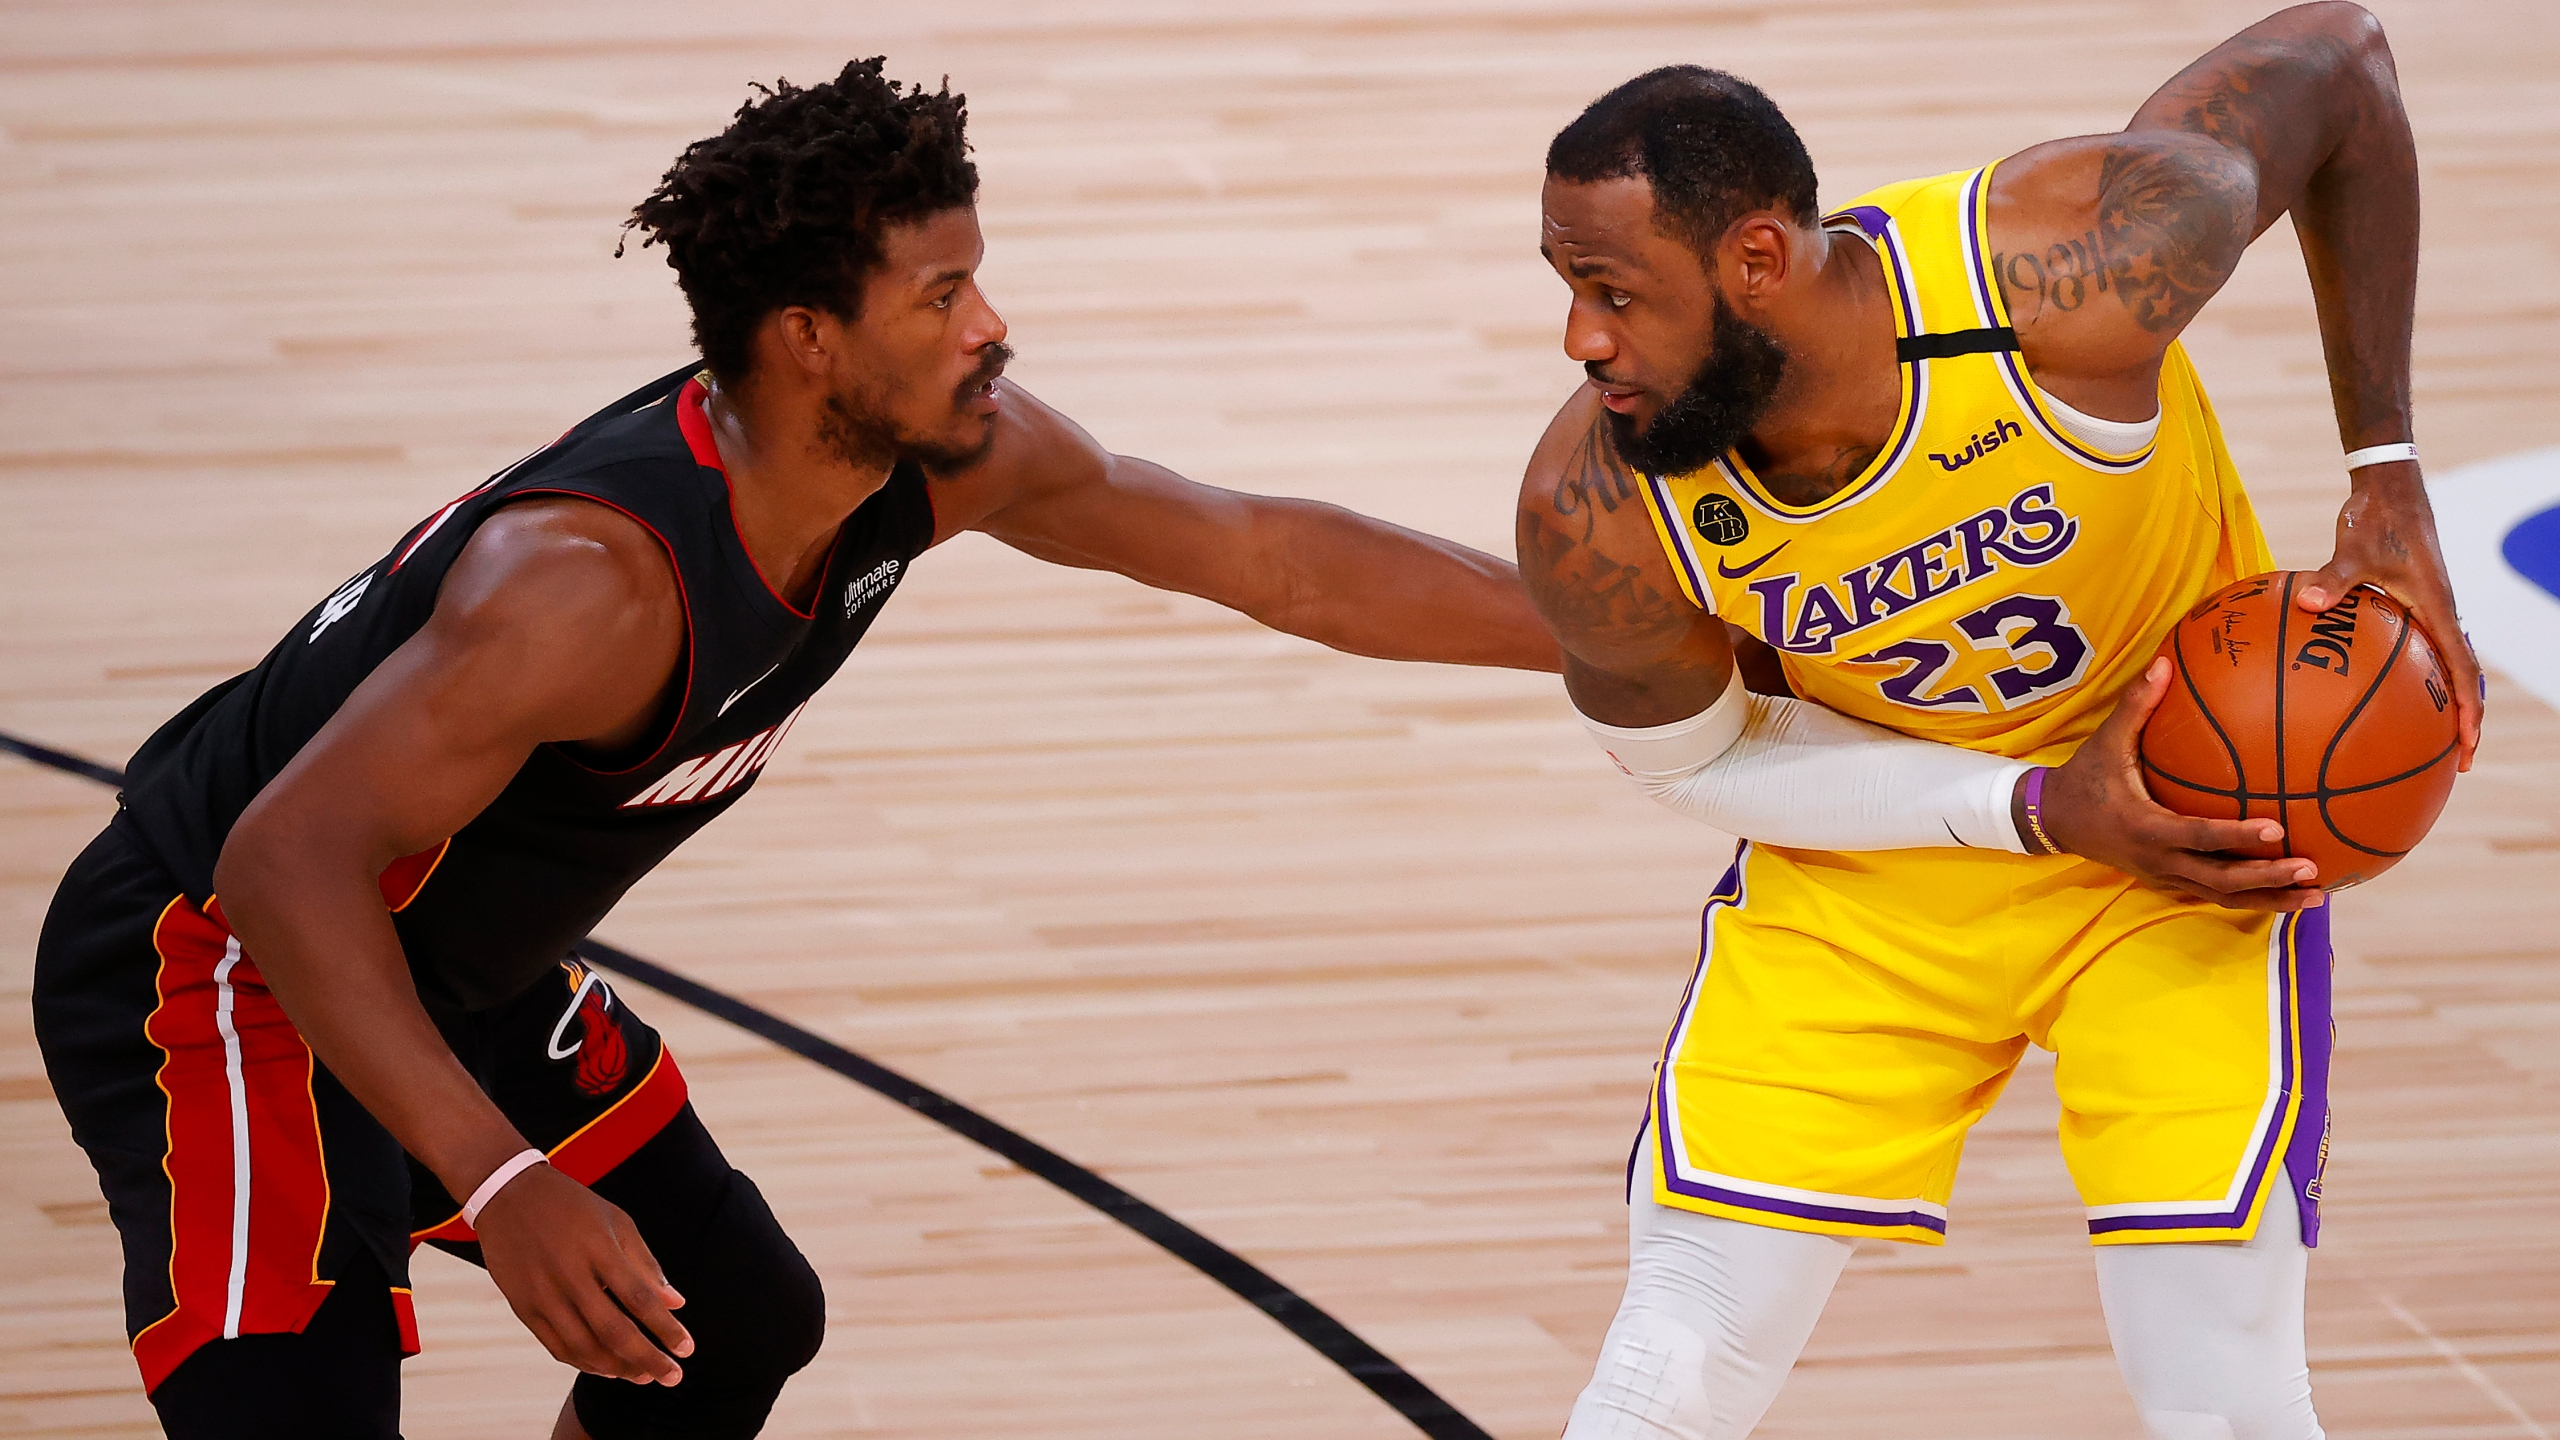 Nba Finals Lakers Lebron Roll In Game 1 Top Heat 116 98 Ktla